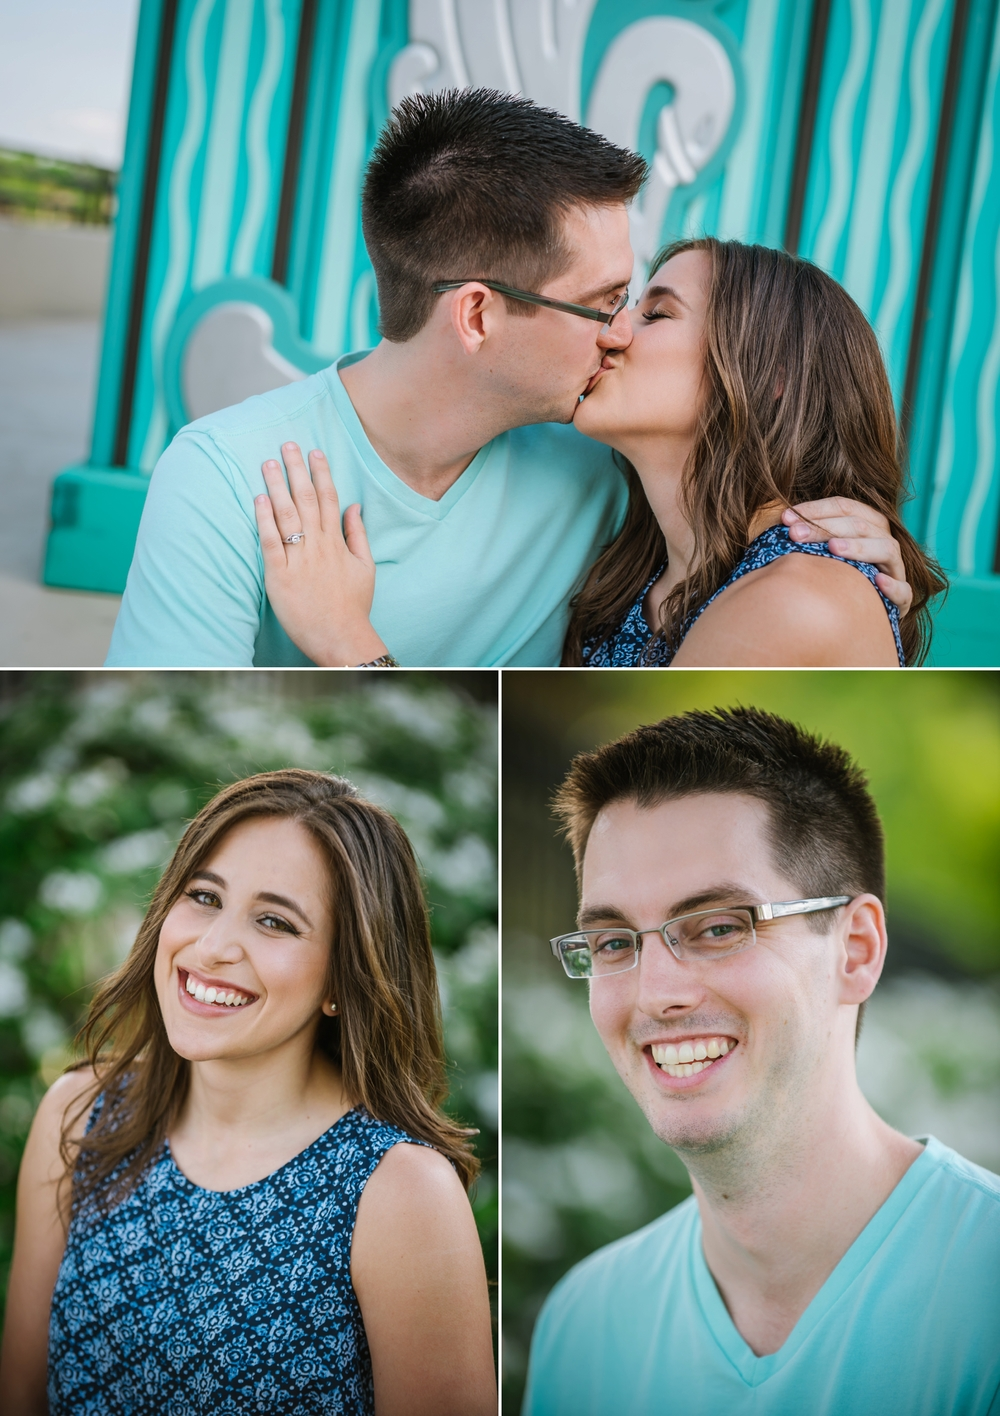 ashlee-hamon-photography-orlando-lake-eola-engagement-photography_0001.jpg